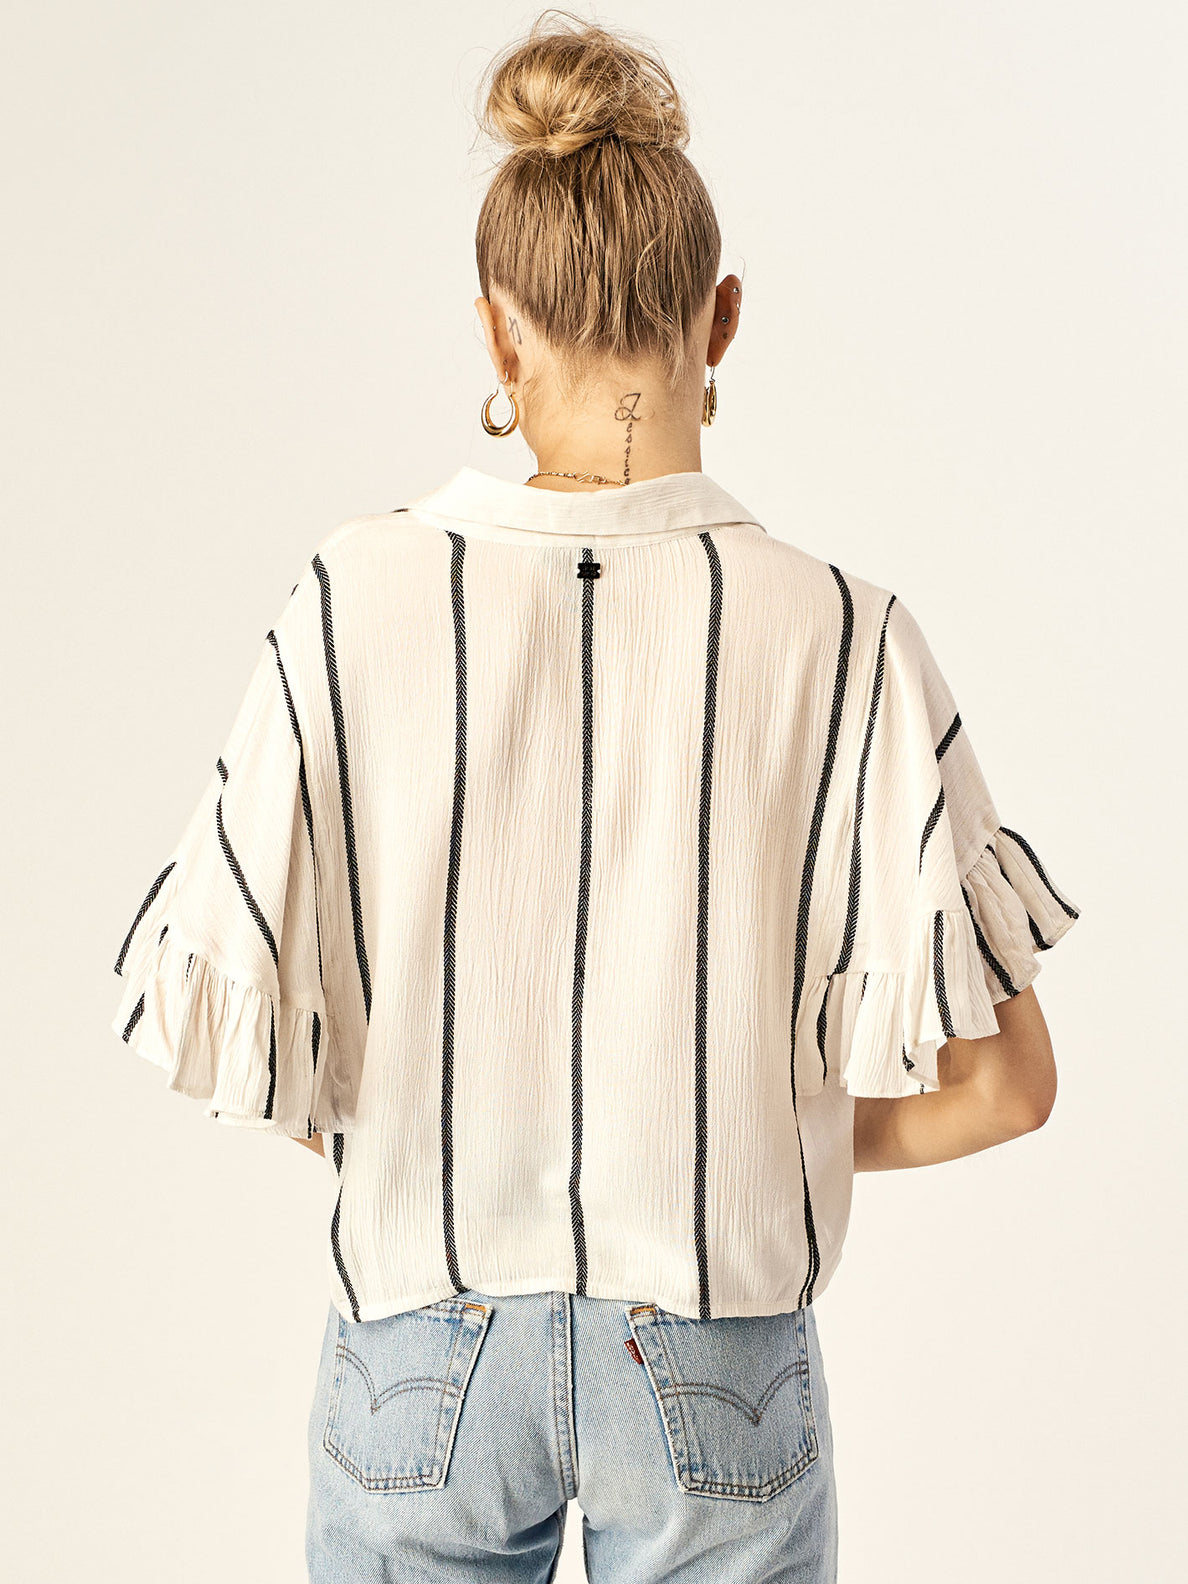 Cheap Frillz Top In Star White, Back View